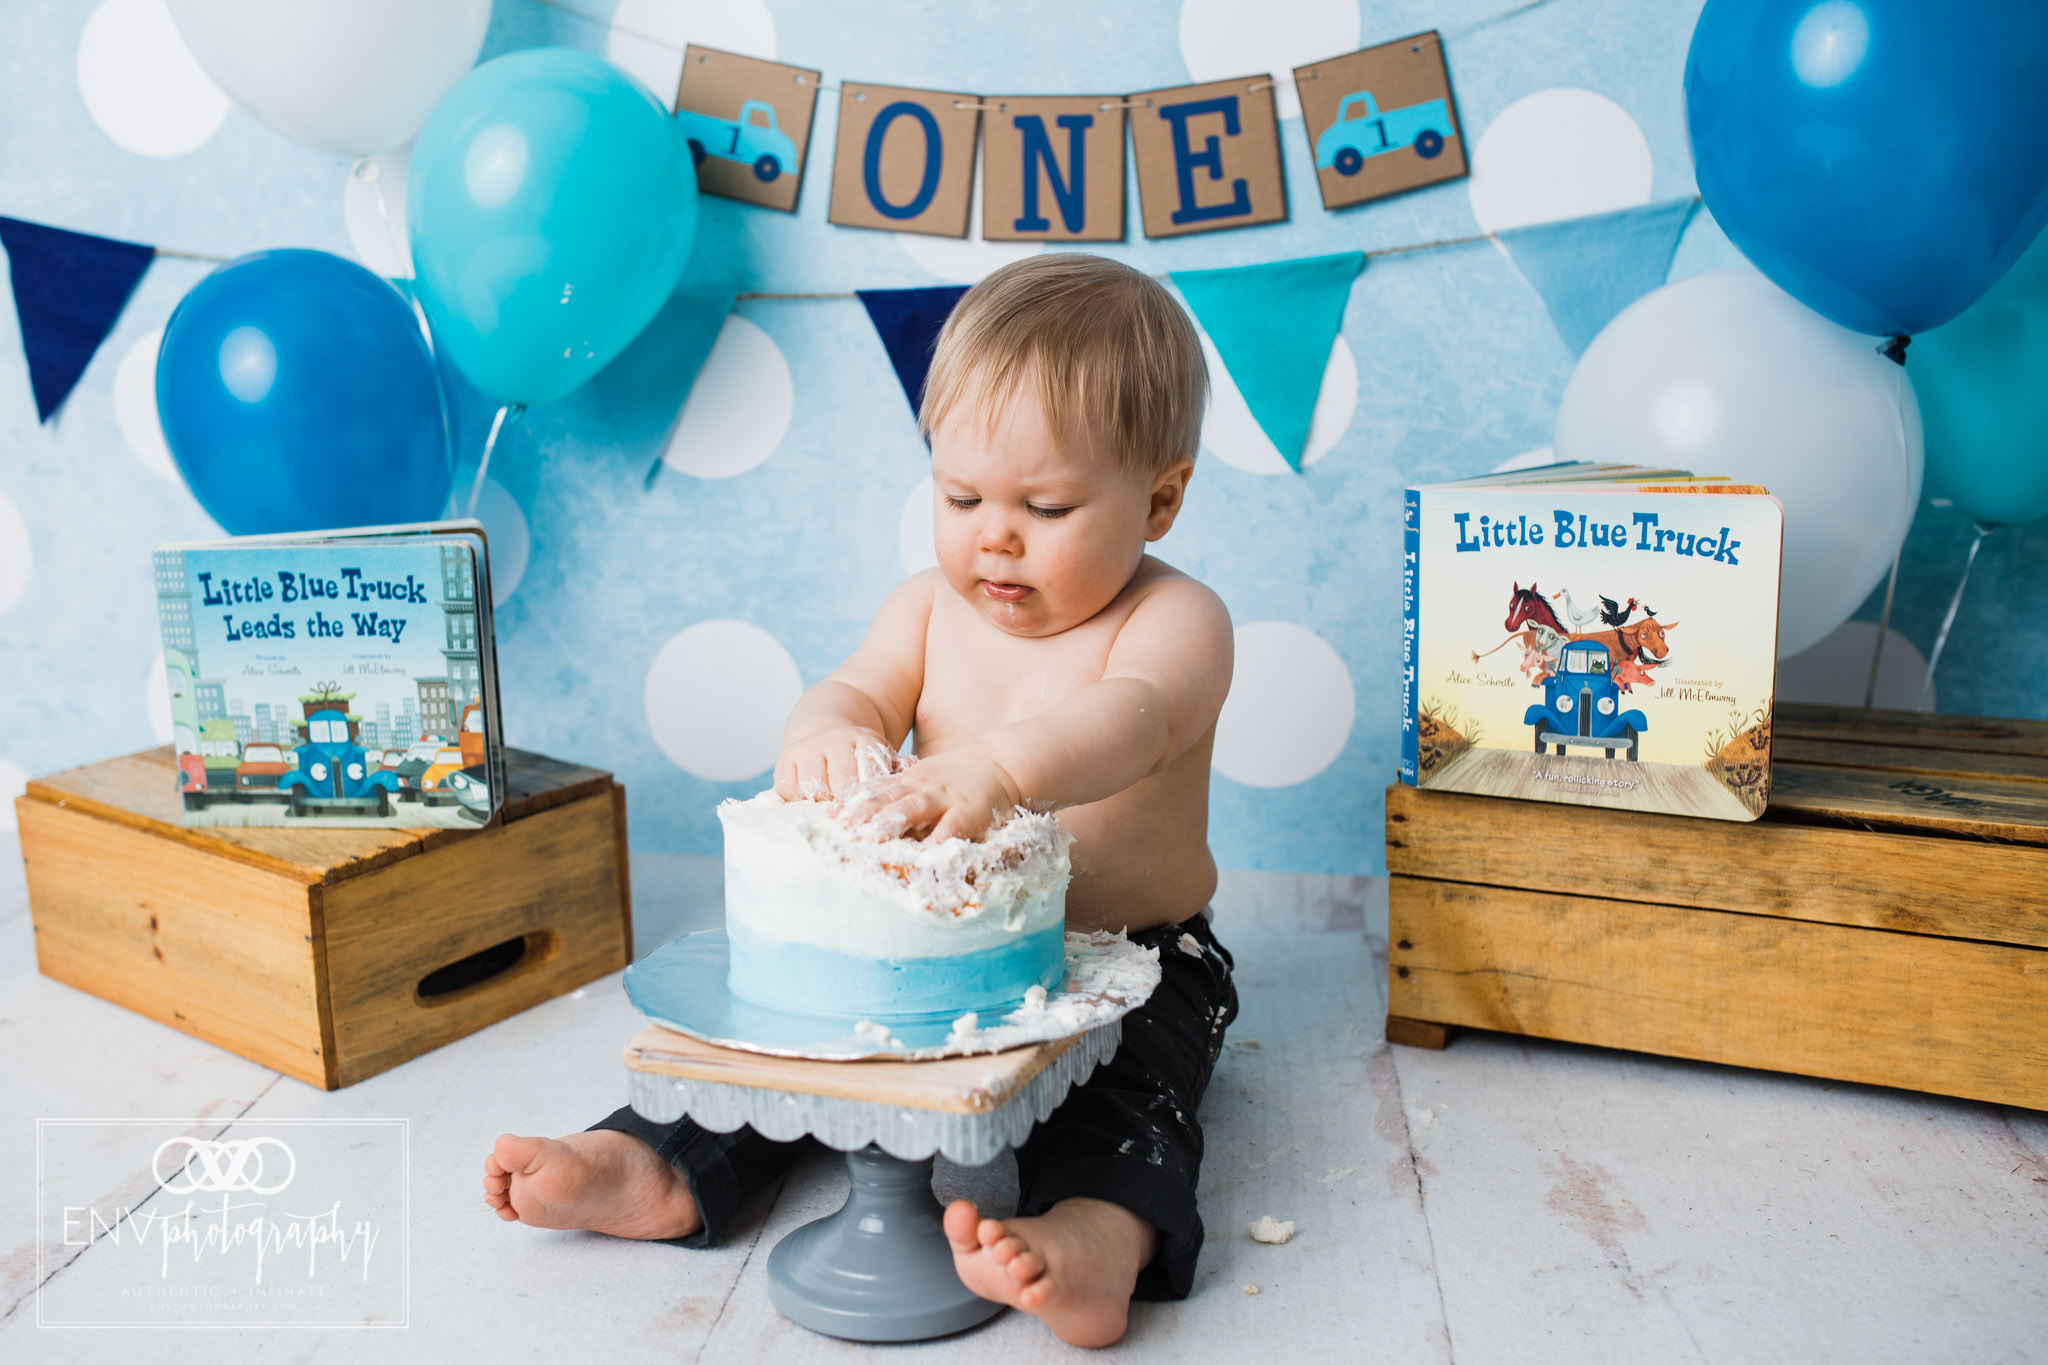 columbus ohio mount vernon ohio family photographer little blue truck cake smash (10).jpg